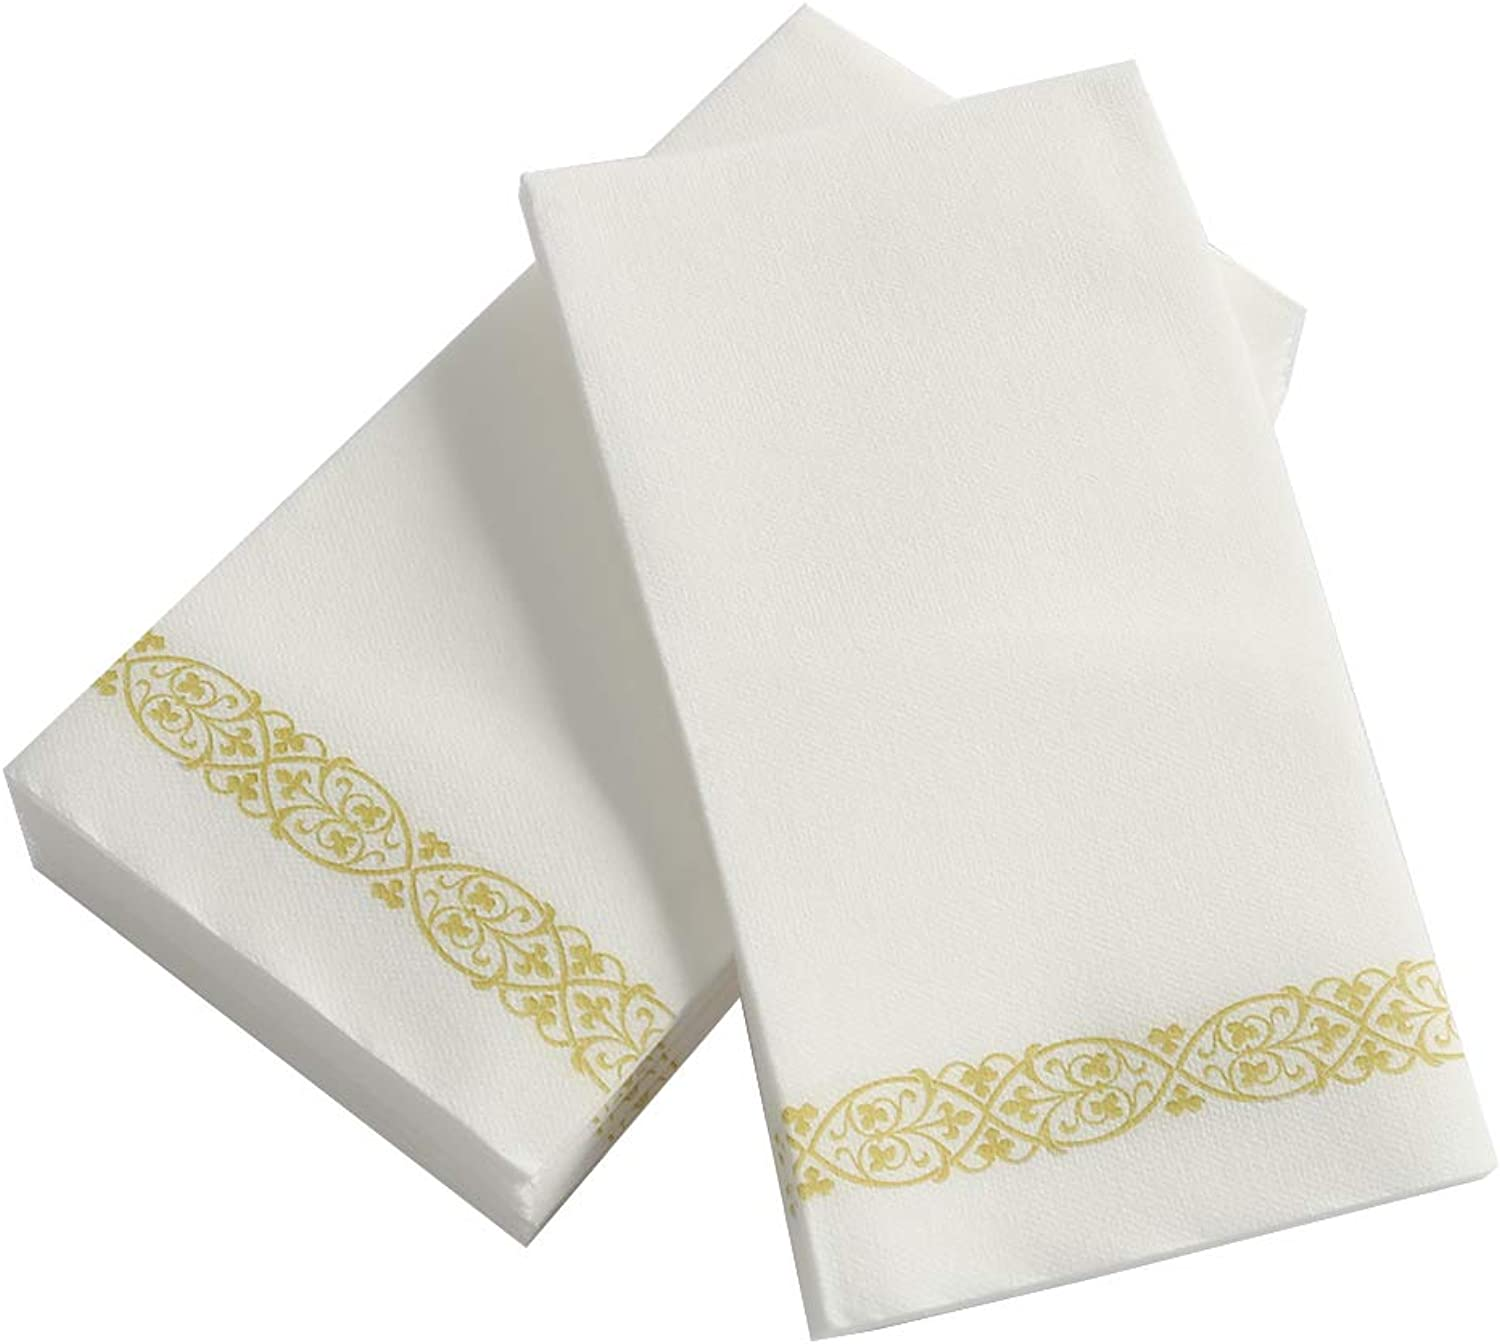 TRLYC Soft and Absorbent Linen Bathroom Hand Towels, gold Floral Disposable Paper Towels Napkins for Guests, 300 Picecs